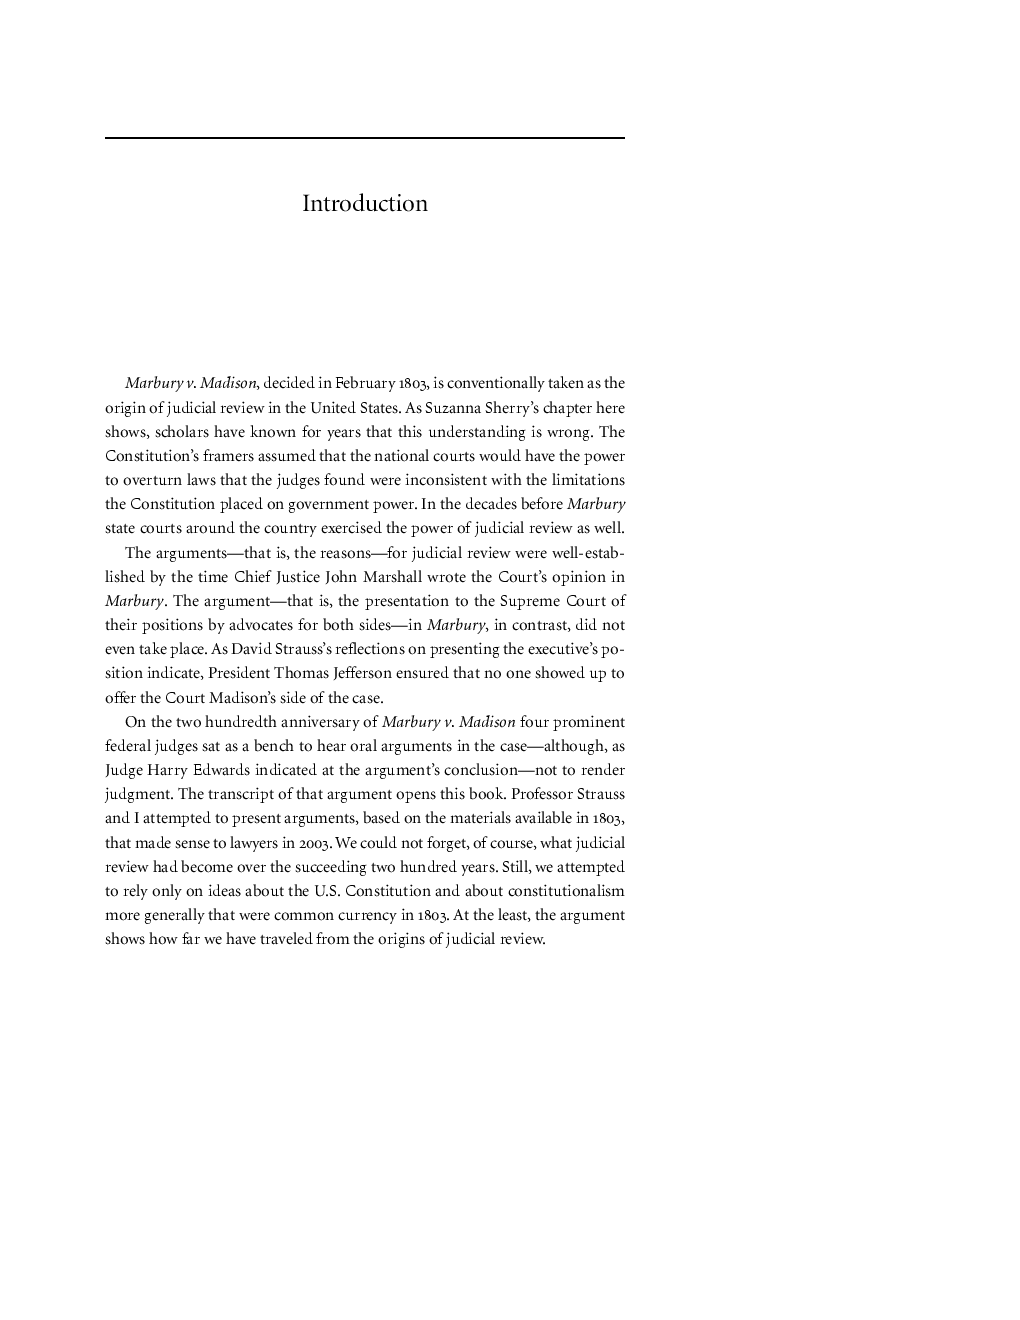 Essay About Deforestation  Old Man And The Sea Essay also The Lesson Essay Arguing Marbury V Madison  Edited By Mark Tushnet How To Write A Correct Essay